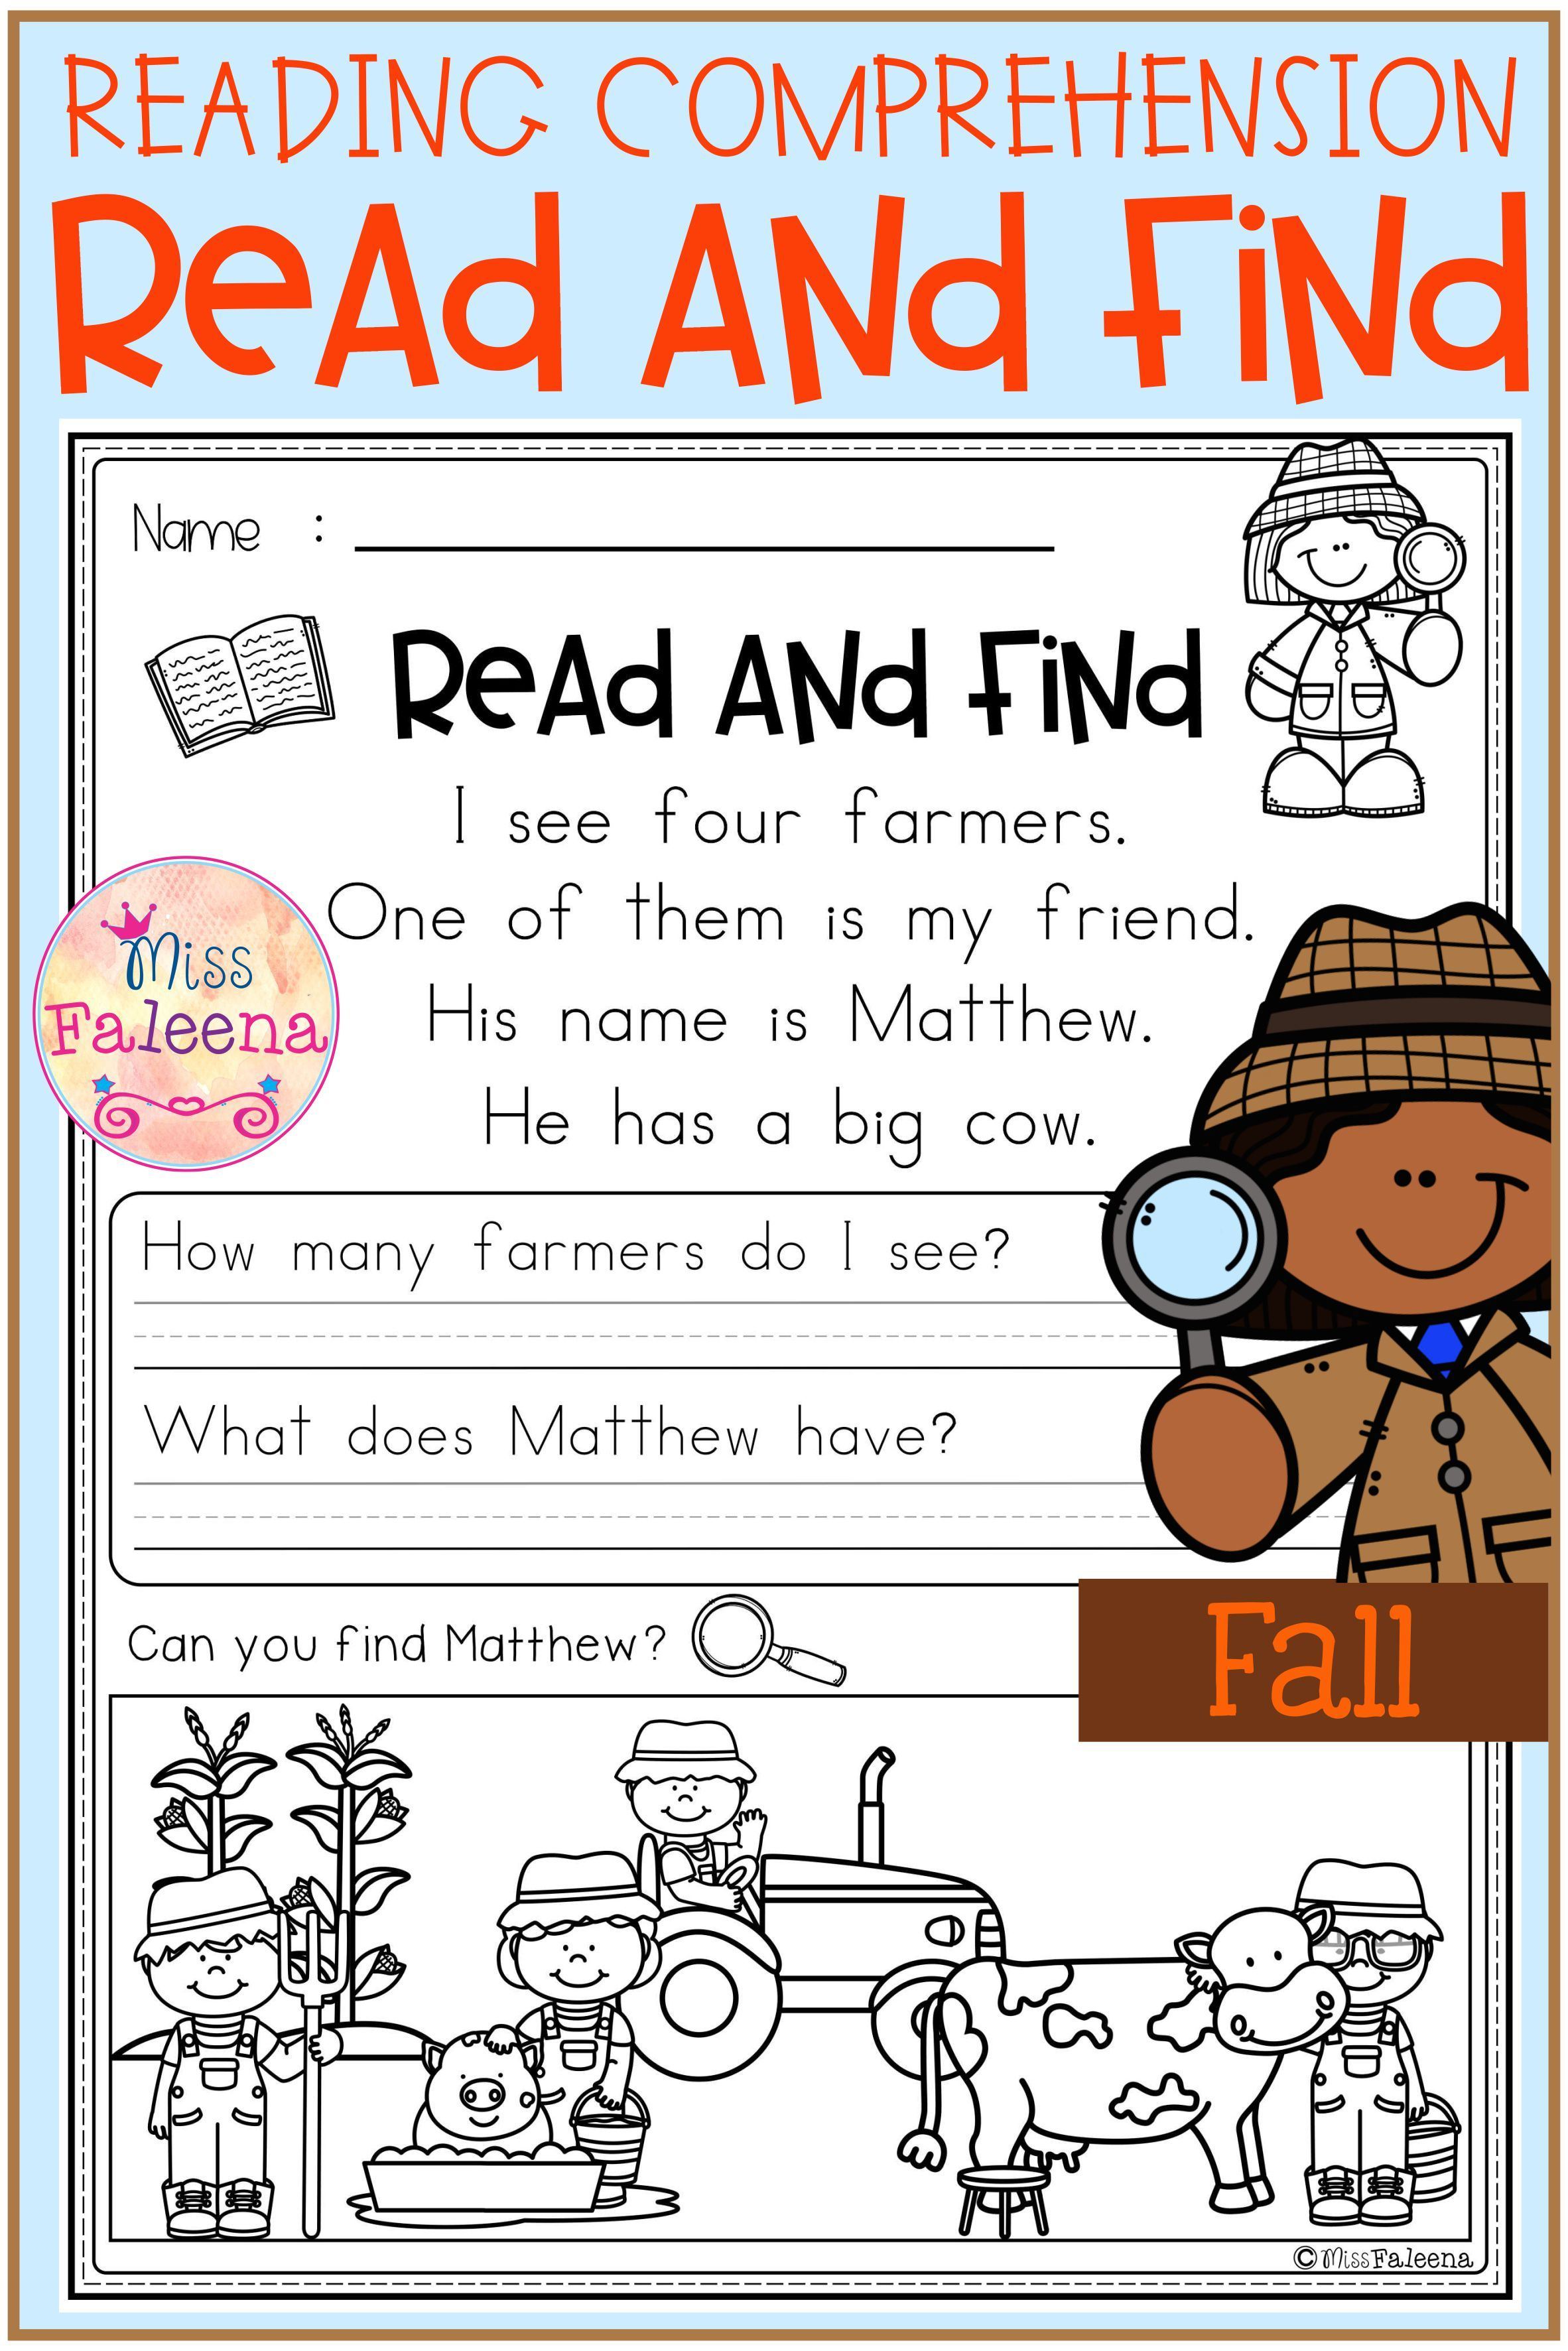 Fall Reading Comprehension Read And Find Fall Reading Comprehension Reading Comprehension Reading Comprehension Worksheets [ 3544 x 2364 Pixel ]